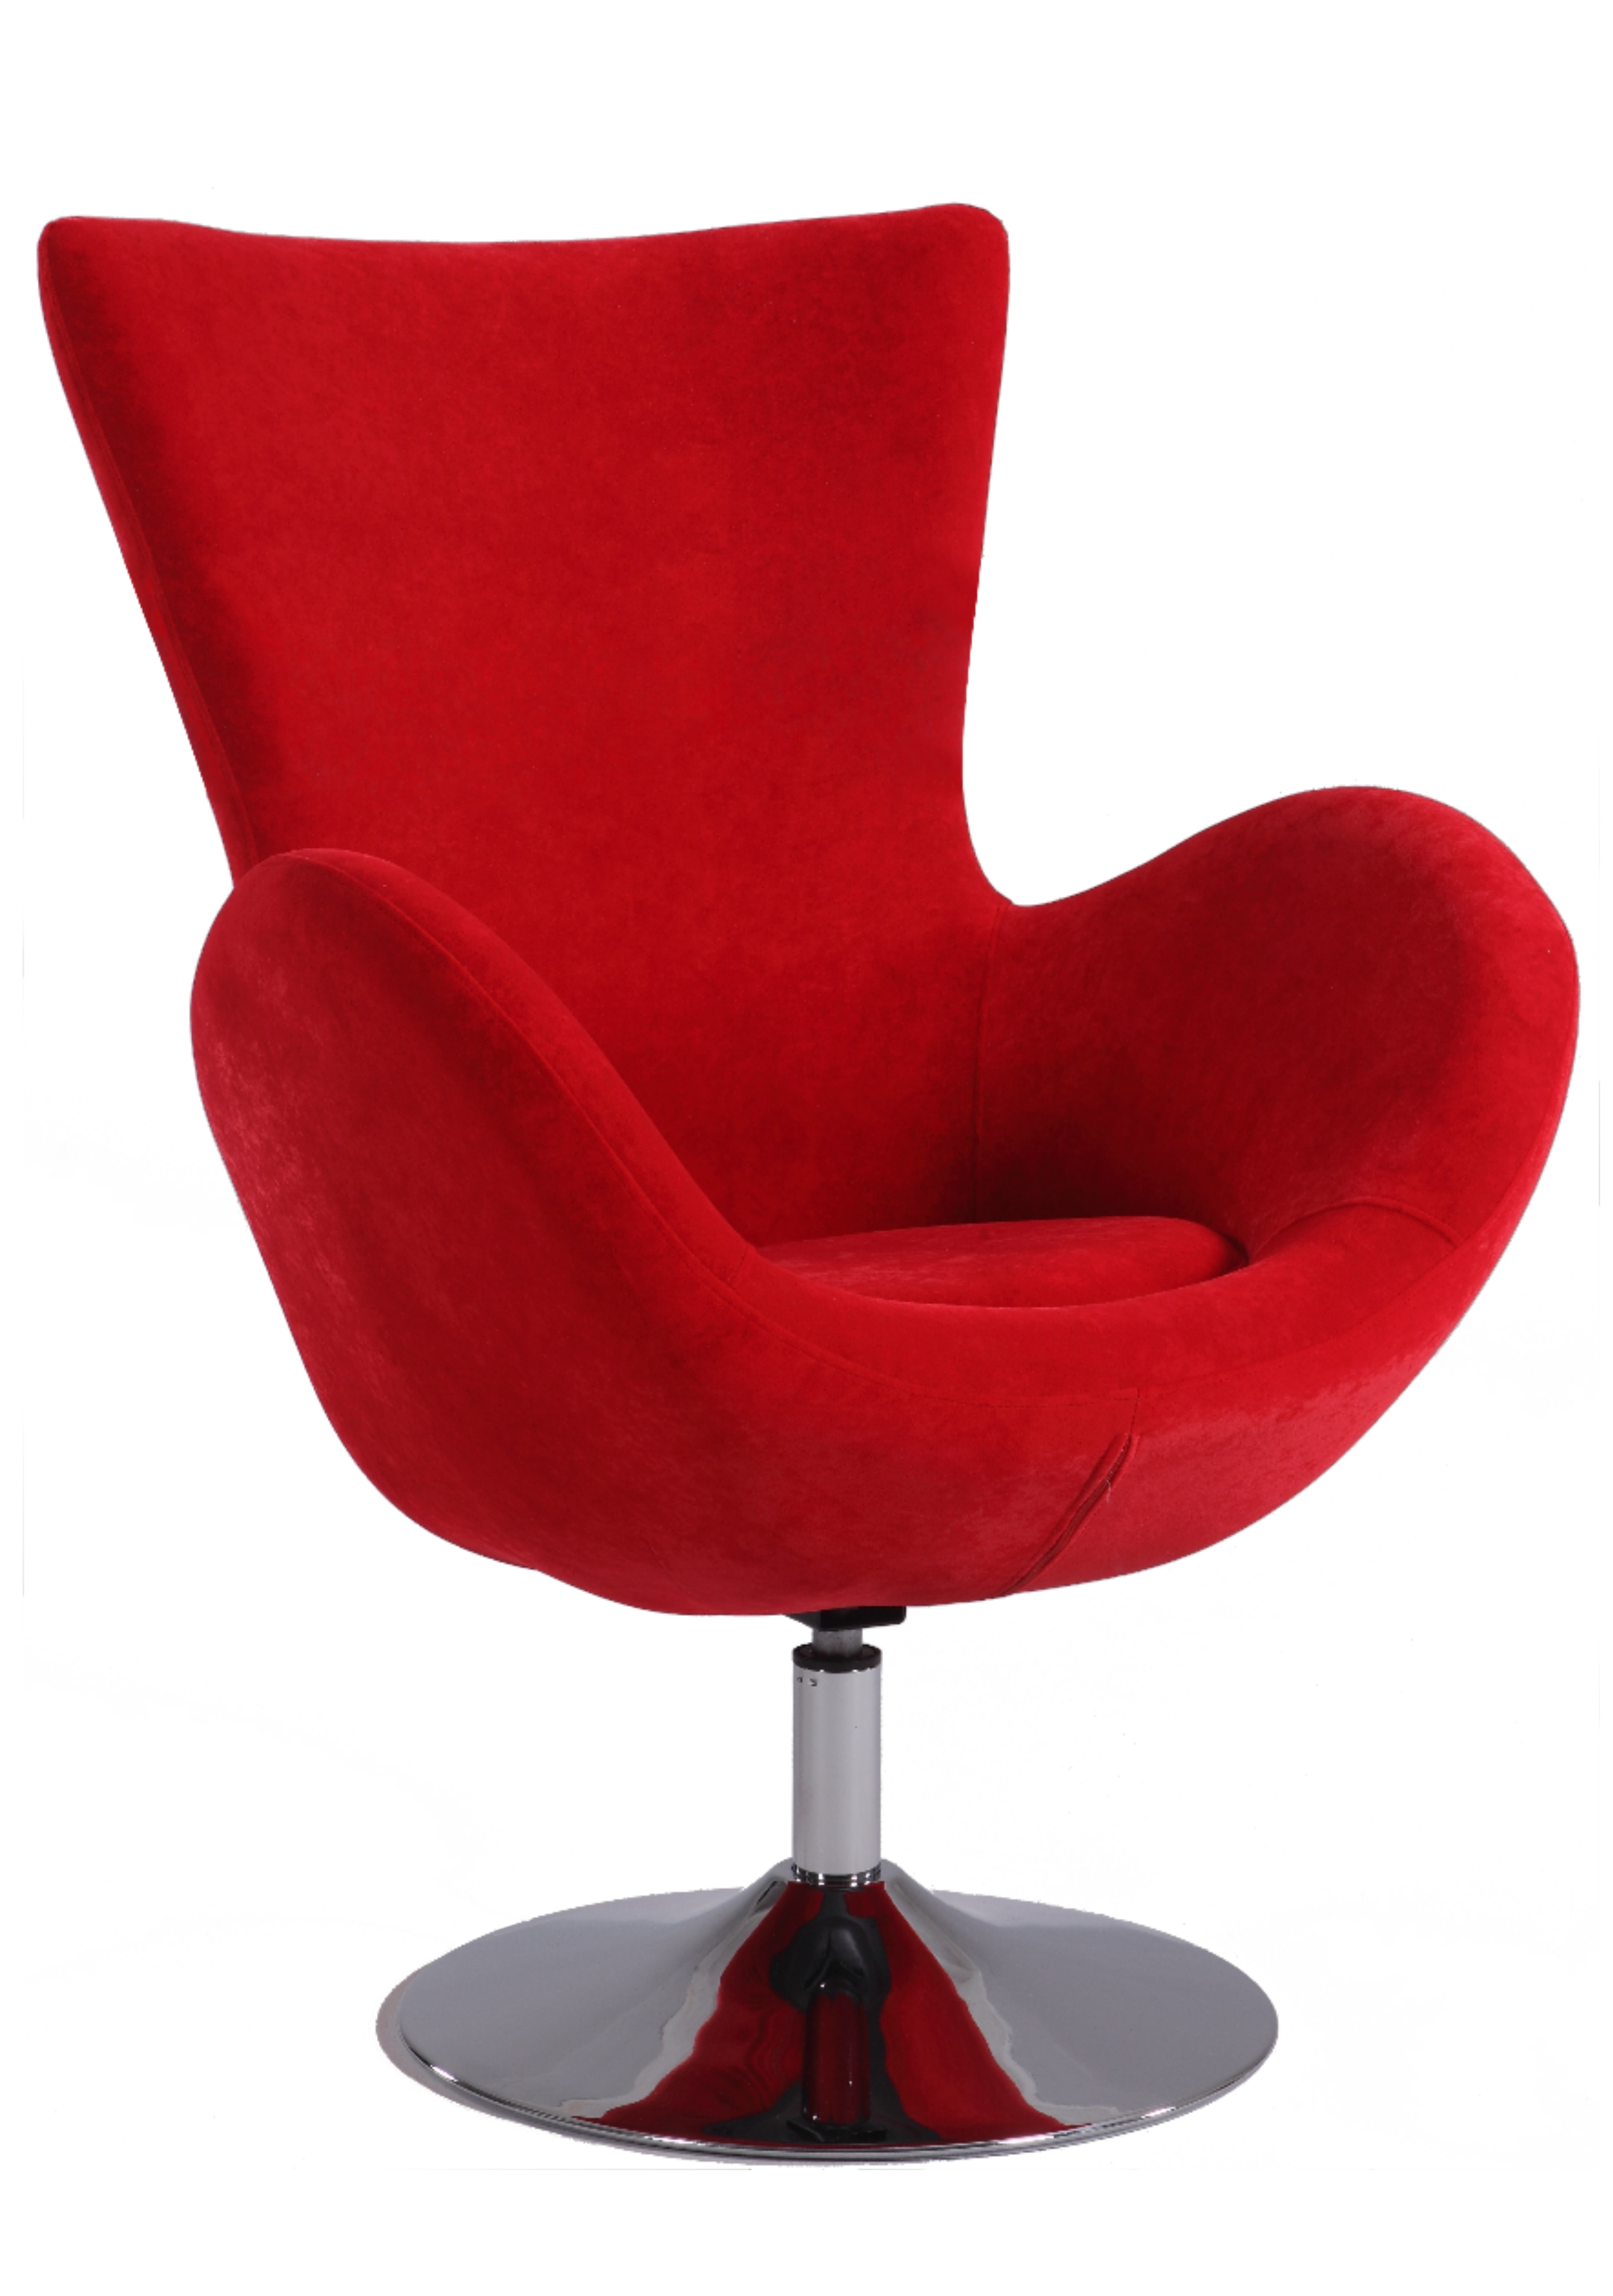 Contemporary Swivel Arm Chair Upholstered in Black or Red ...